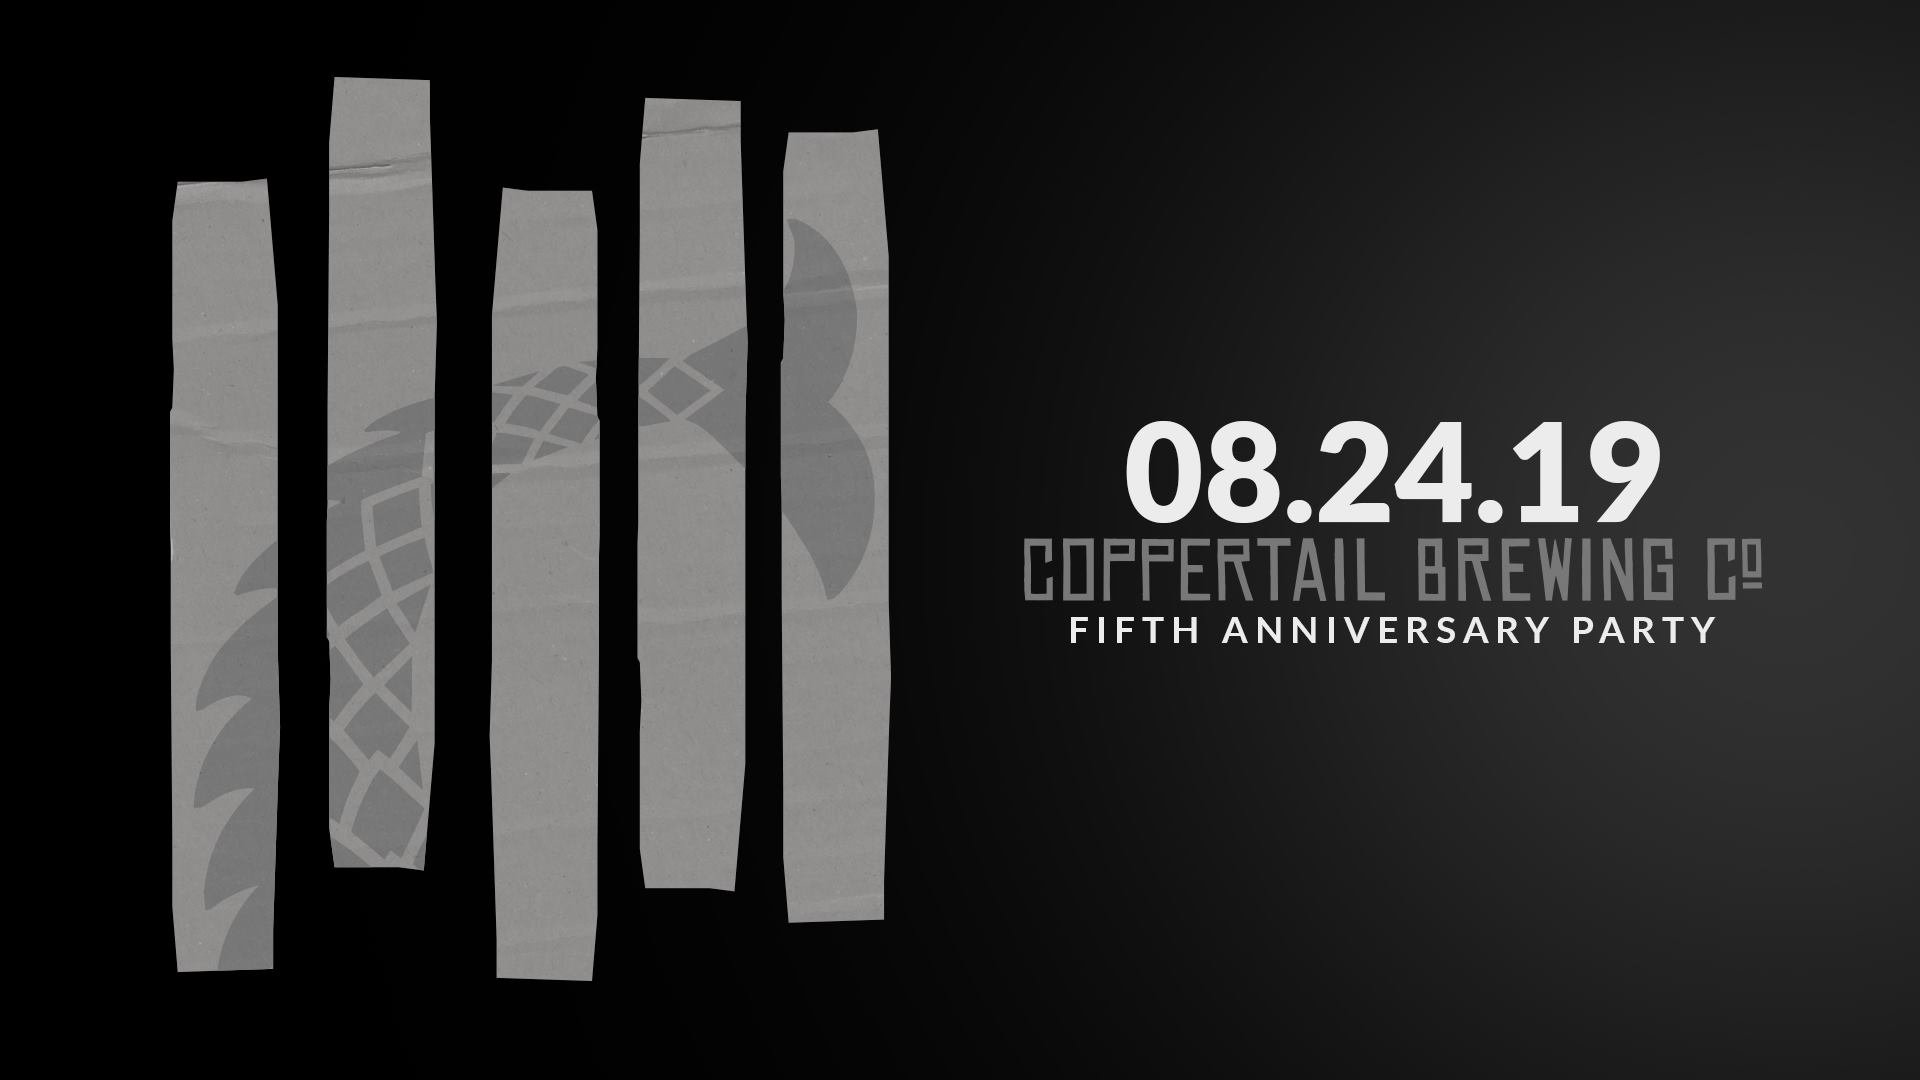 Coppertail Brewing Company 5th Anniversary